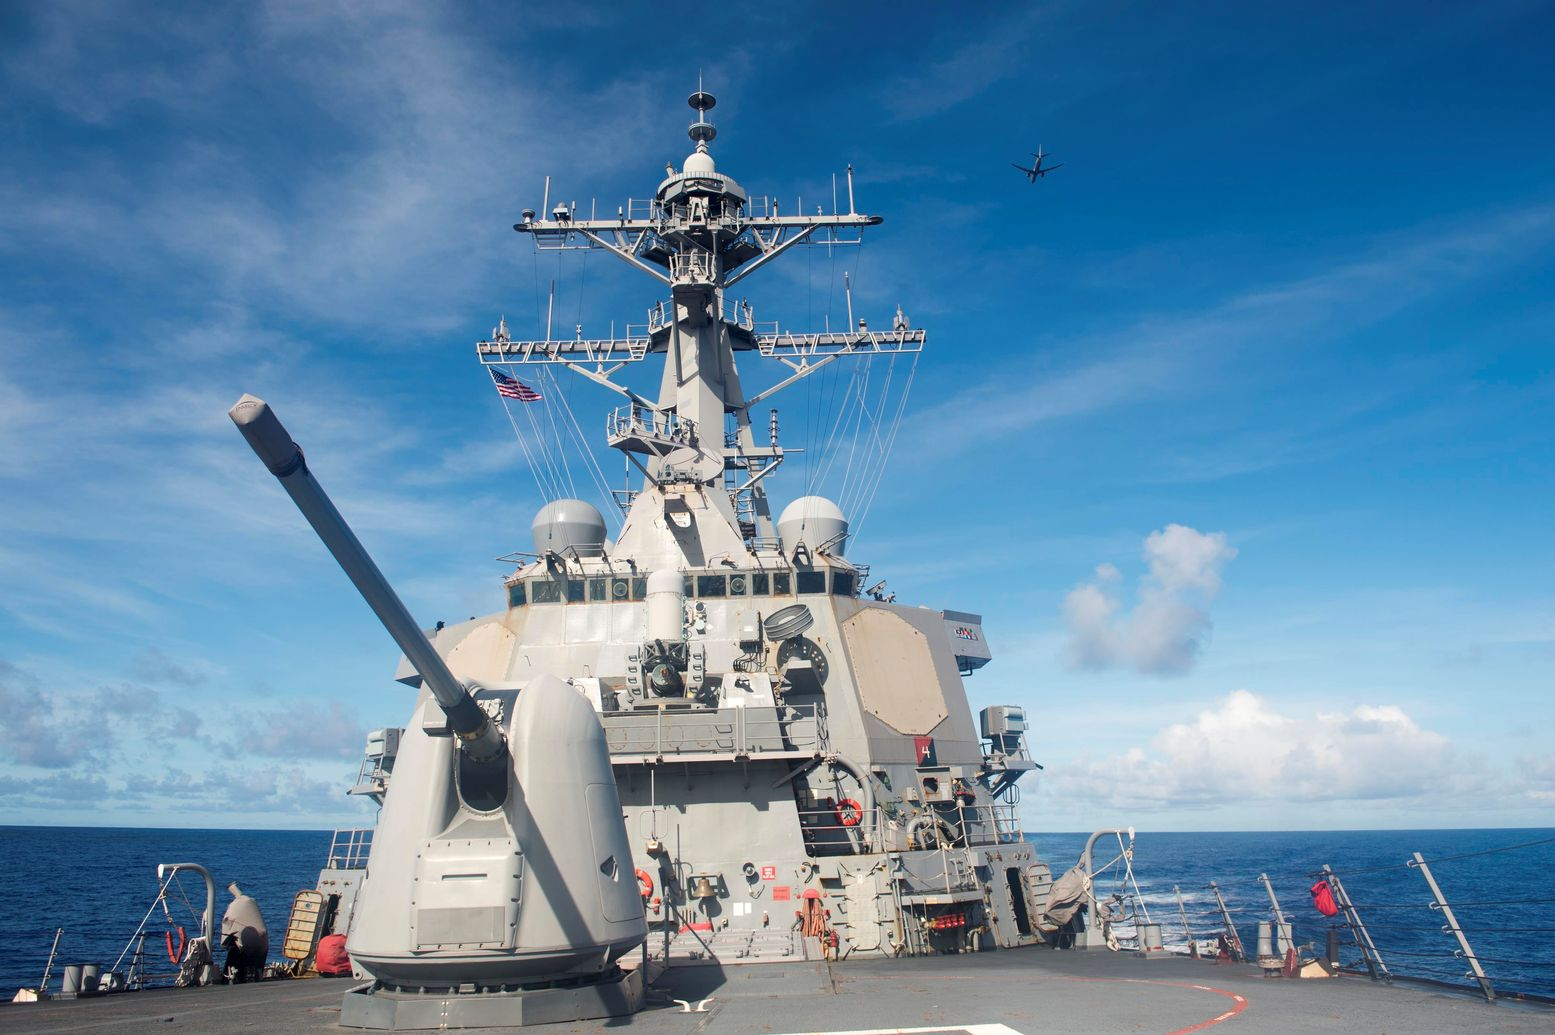 Cat and Mouse: A U.S. Destroyer Shadowed a Russian Warship in the